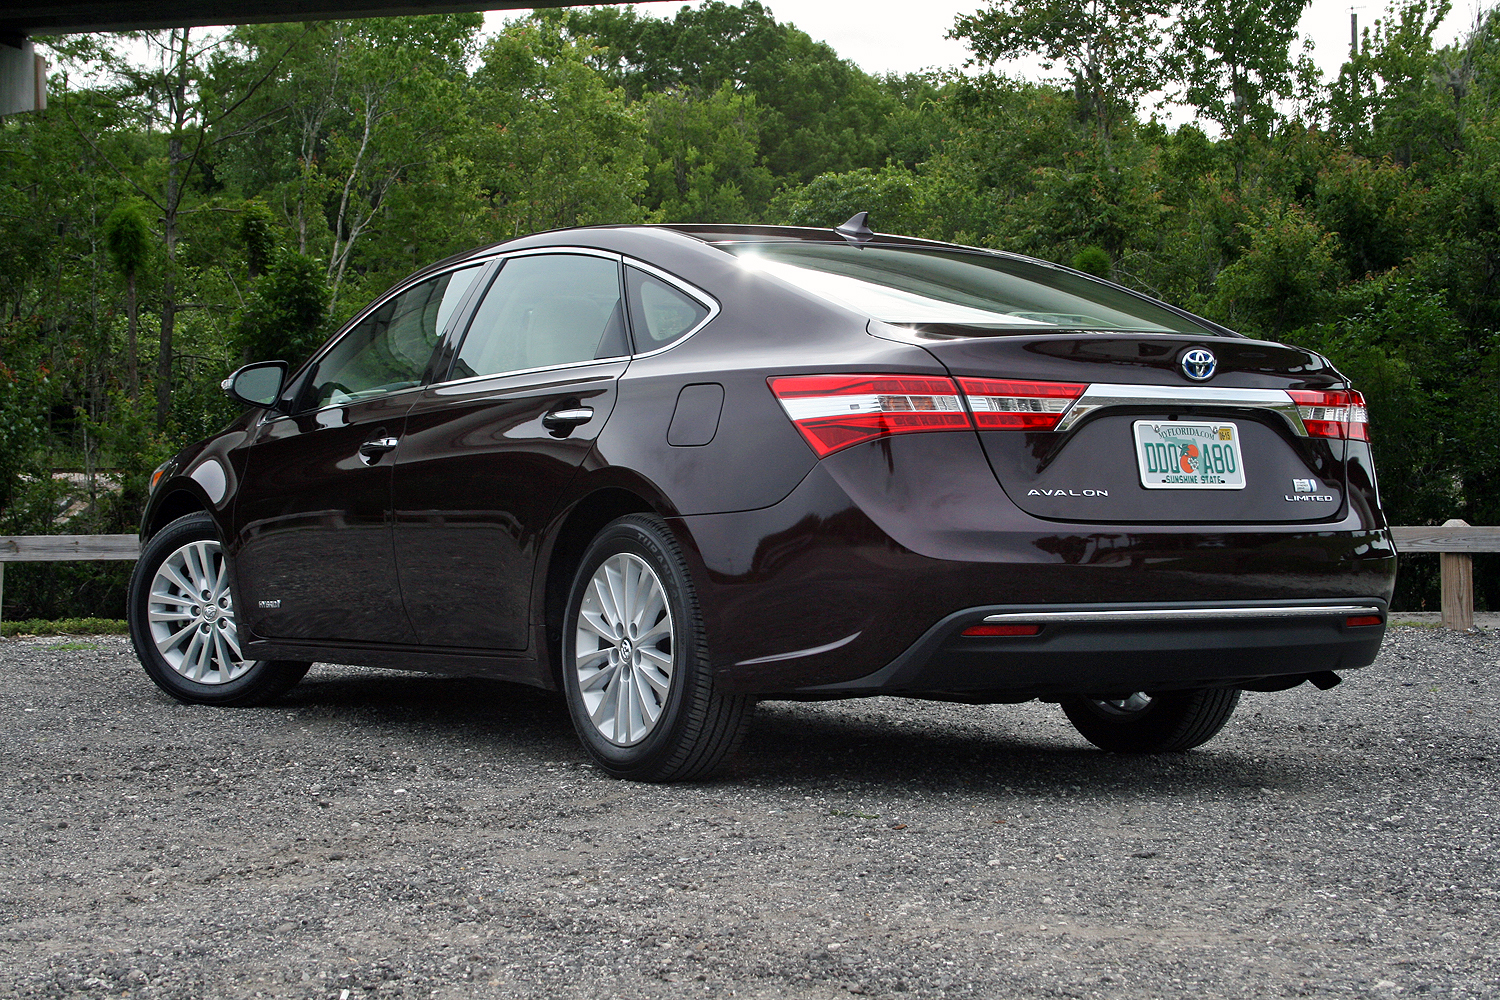 2015 toyota avalon hybrid driven picture 632298 car review top speed. Black Bedroom Furniture Sets. Home Design Ideas